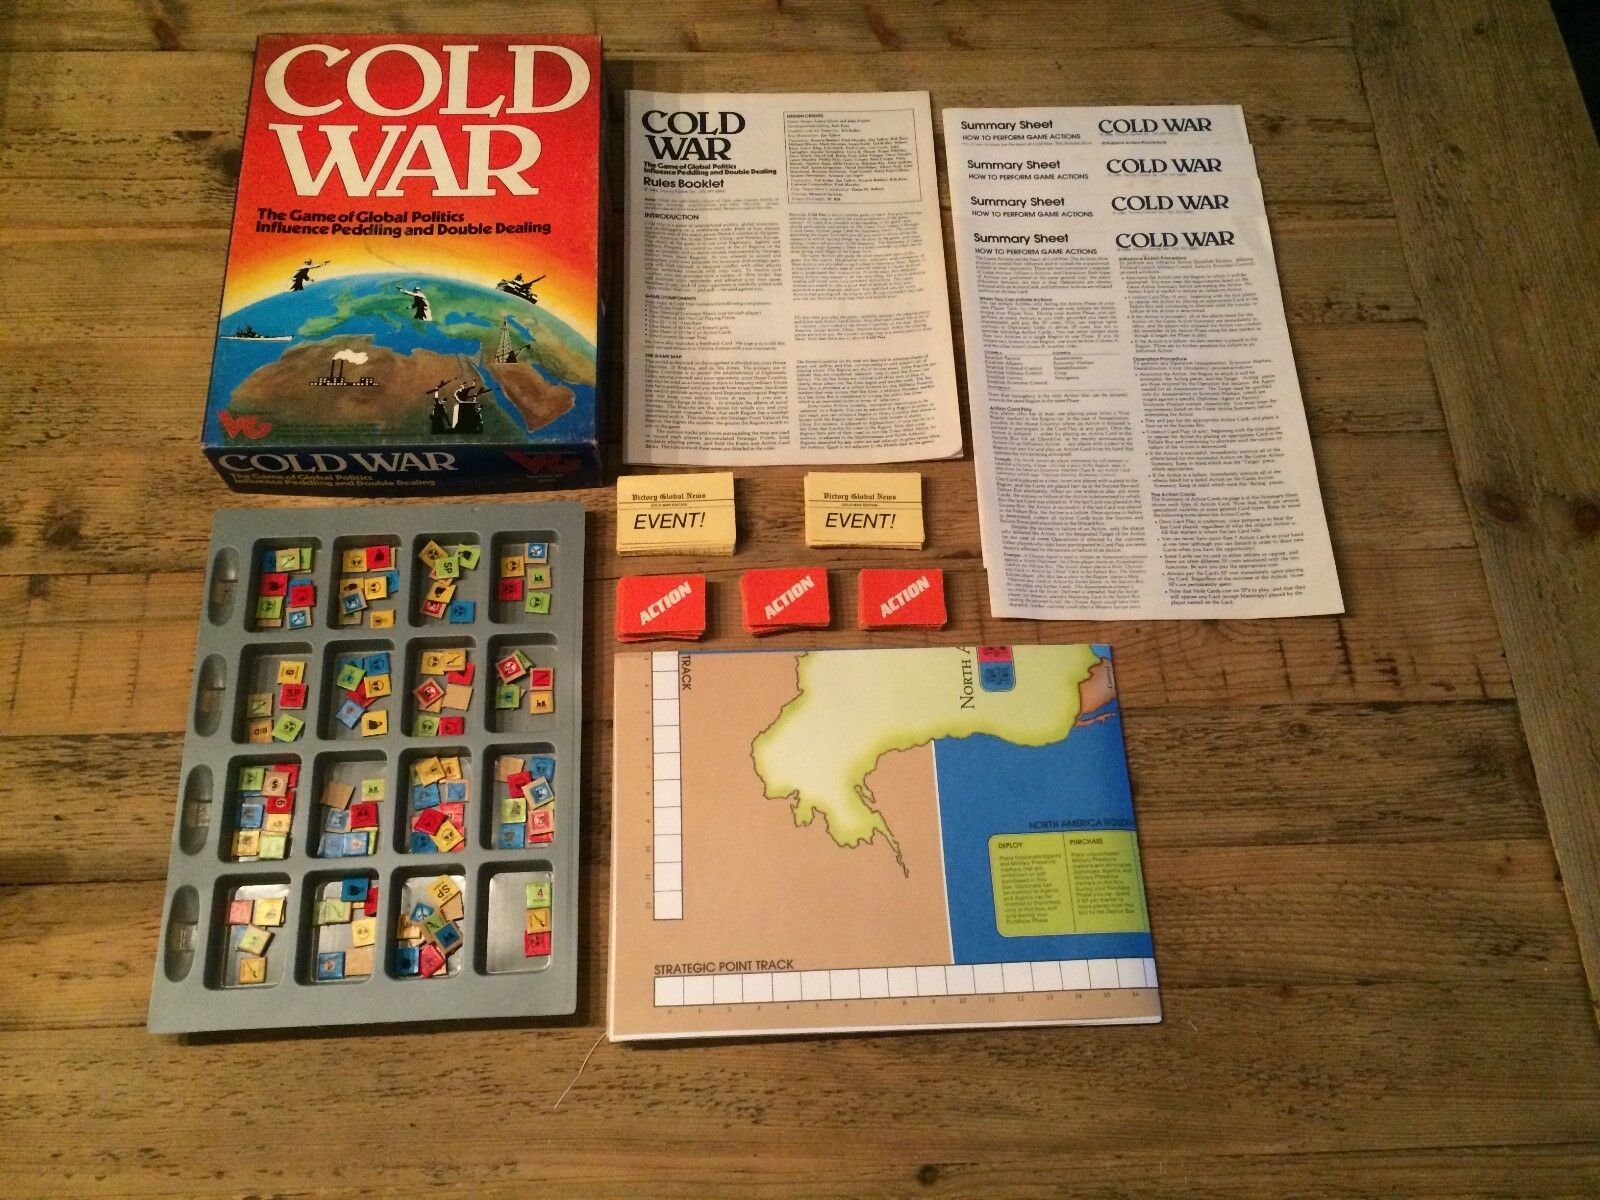 Cold War (The game of global politics) by Victory Games, boardgame